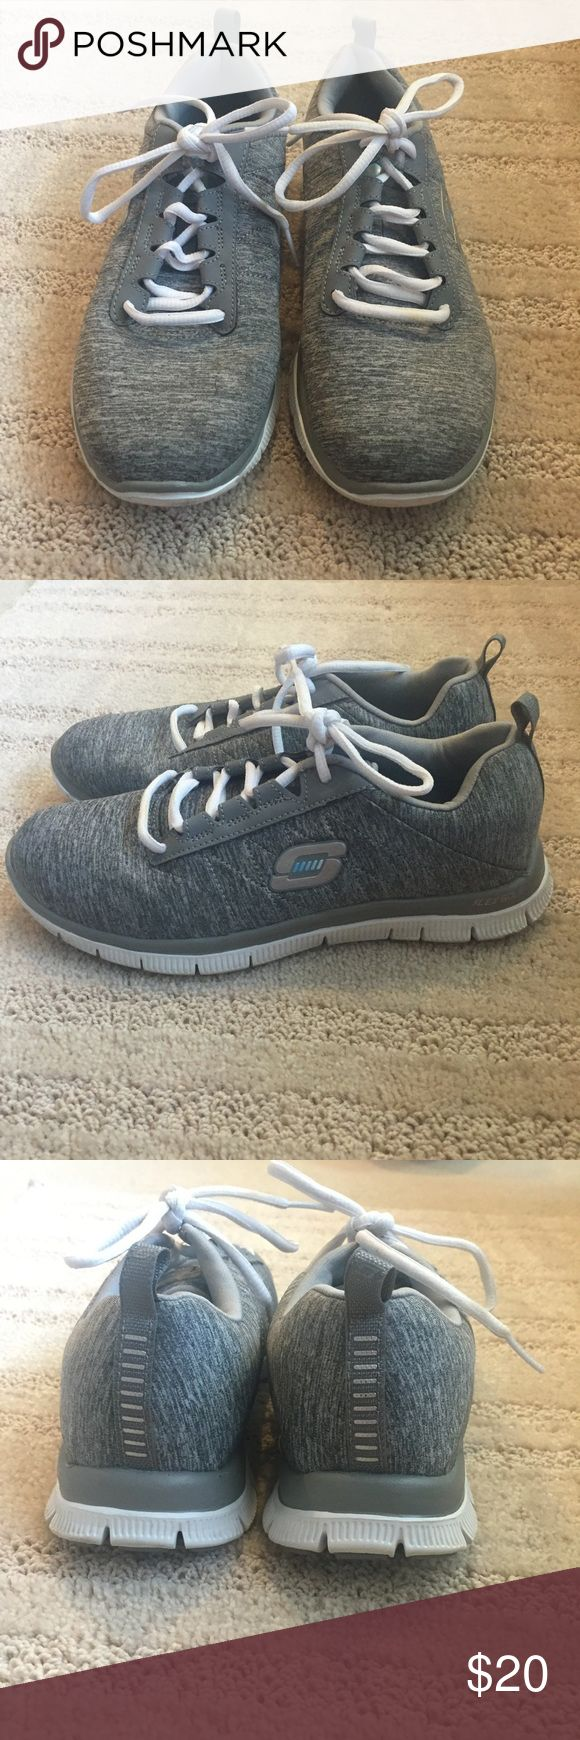 Grey Sketchers Tennis Shoes These are basically new! Great shoes! They are the lightweight memory foam edition! Skechers Shoes Sneakers